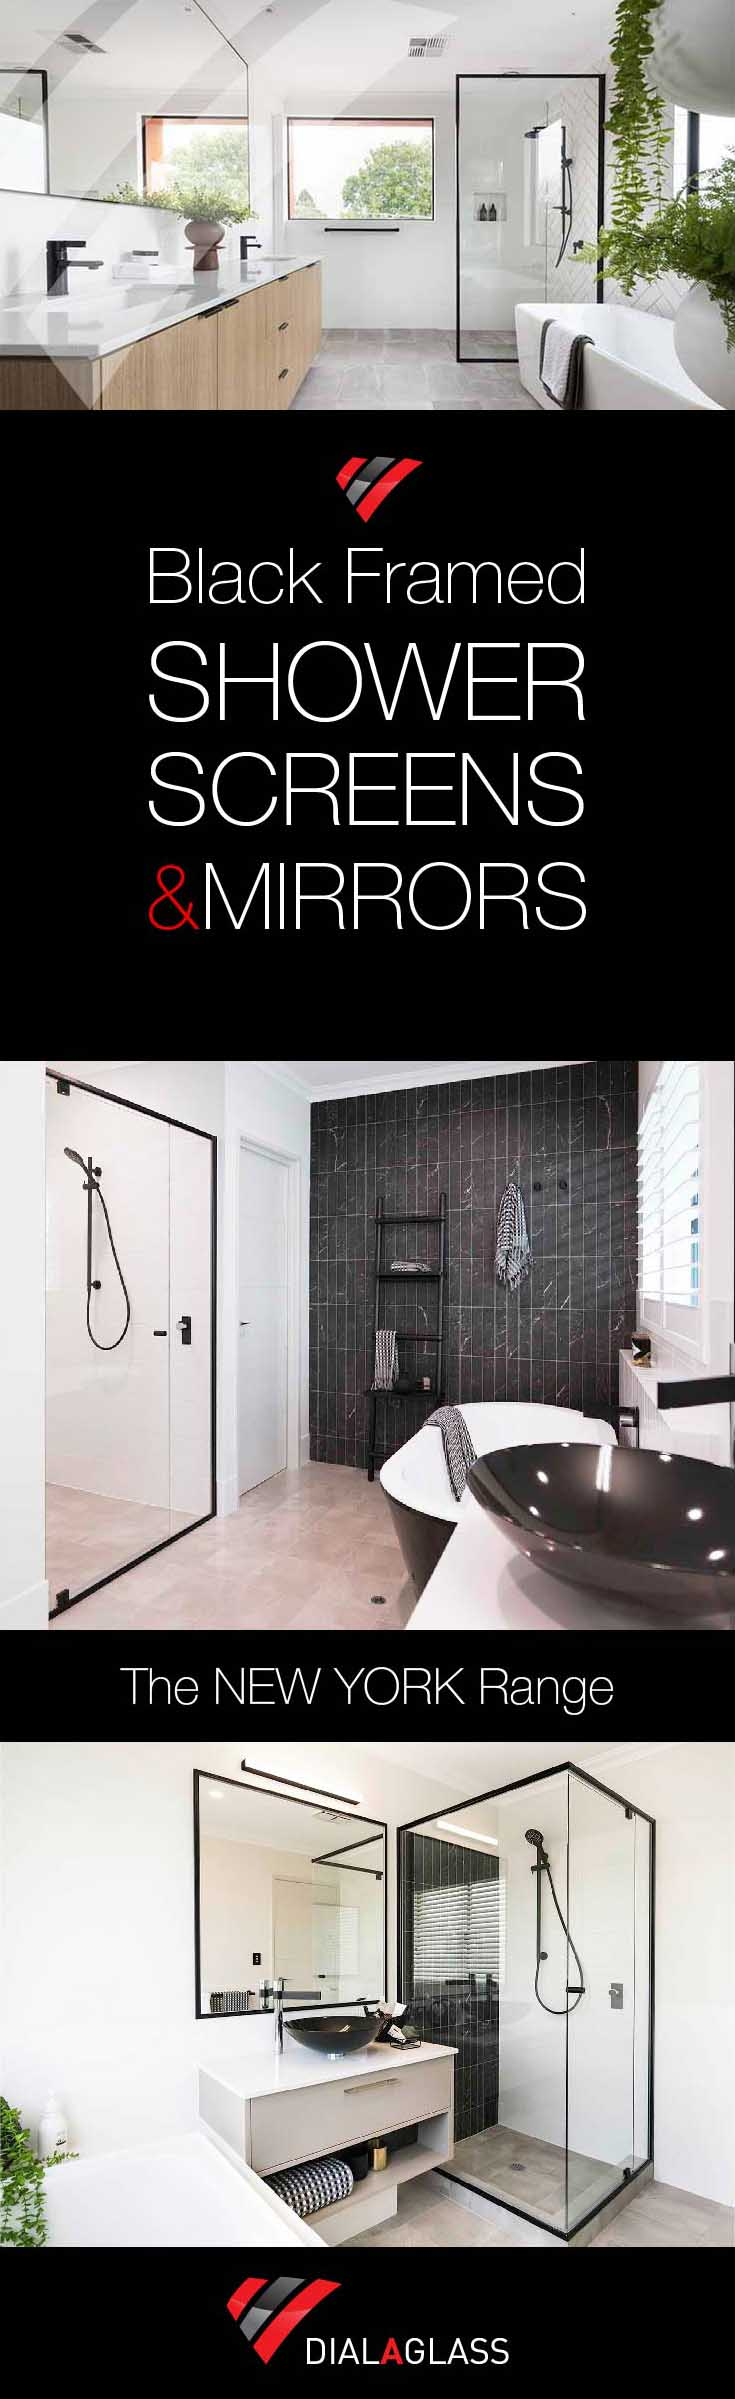 BLACK FRAMED SHOWER SCREEN EXAMPLES